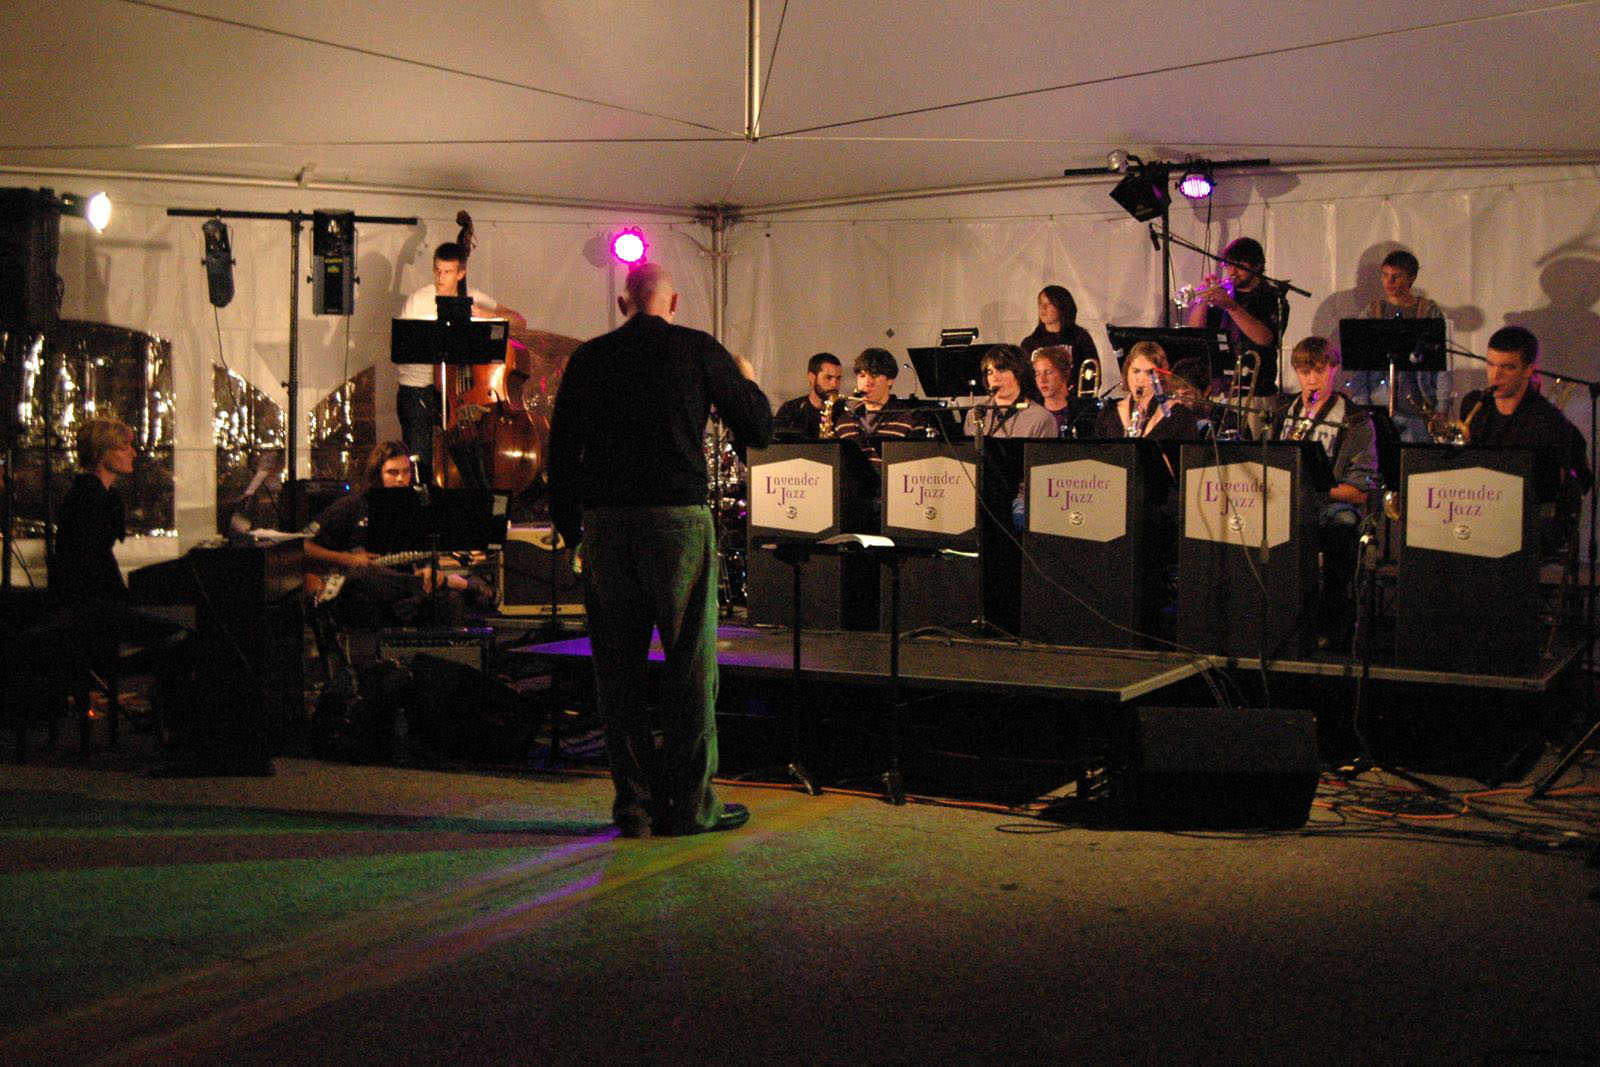 Lavender Jazz performs in a tent for First Friday